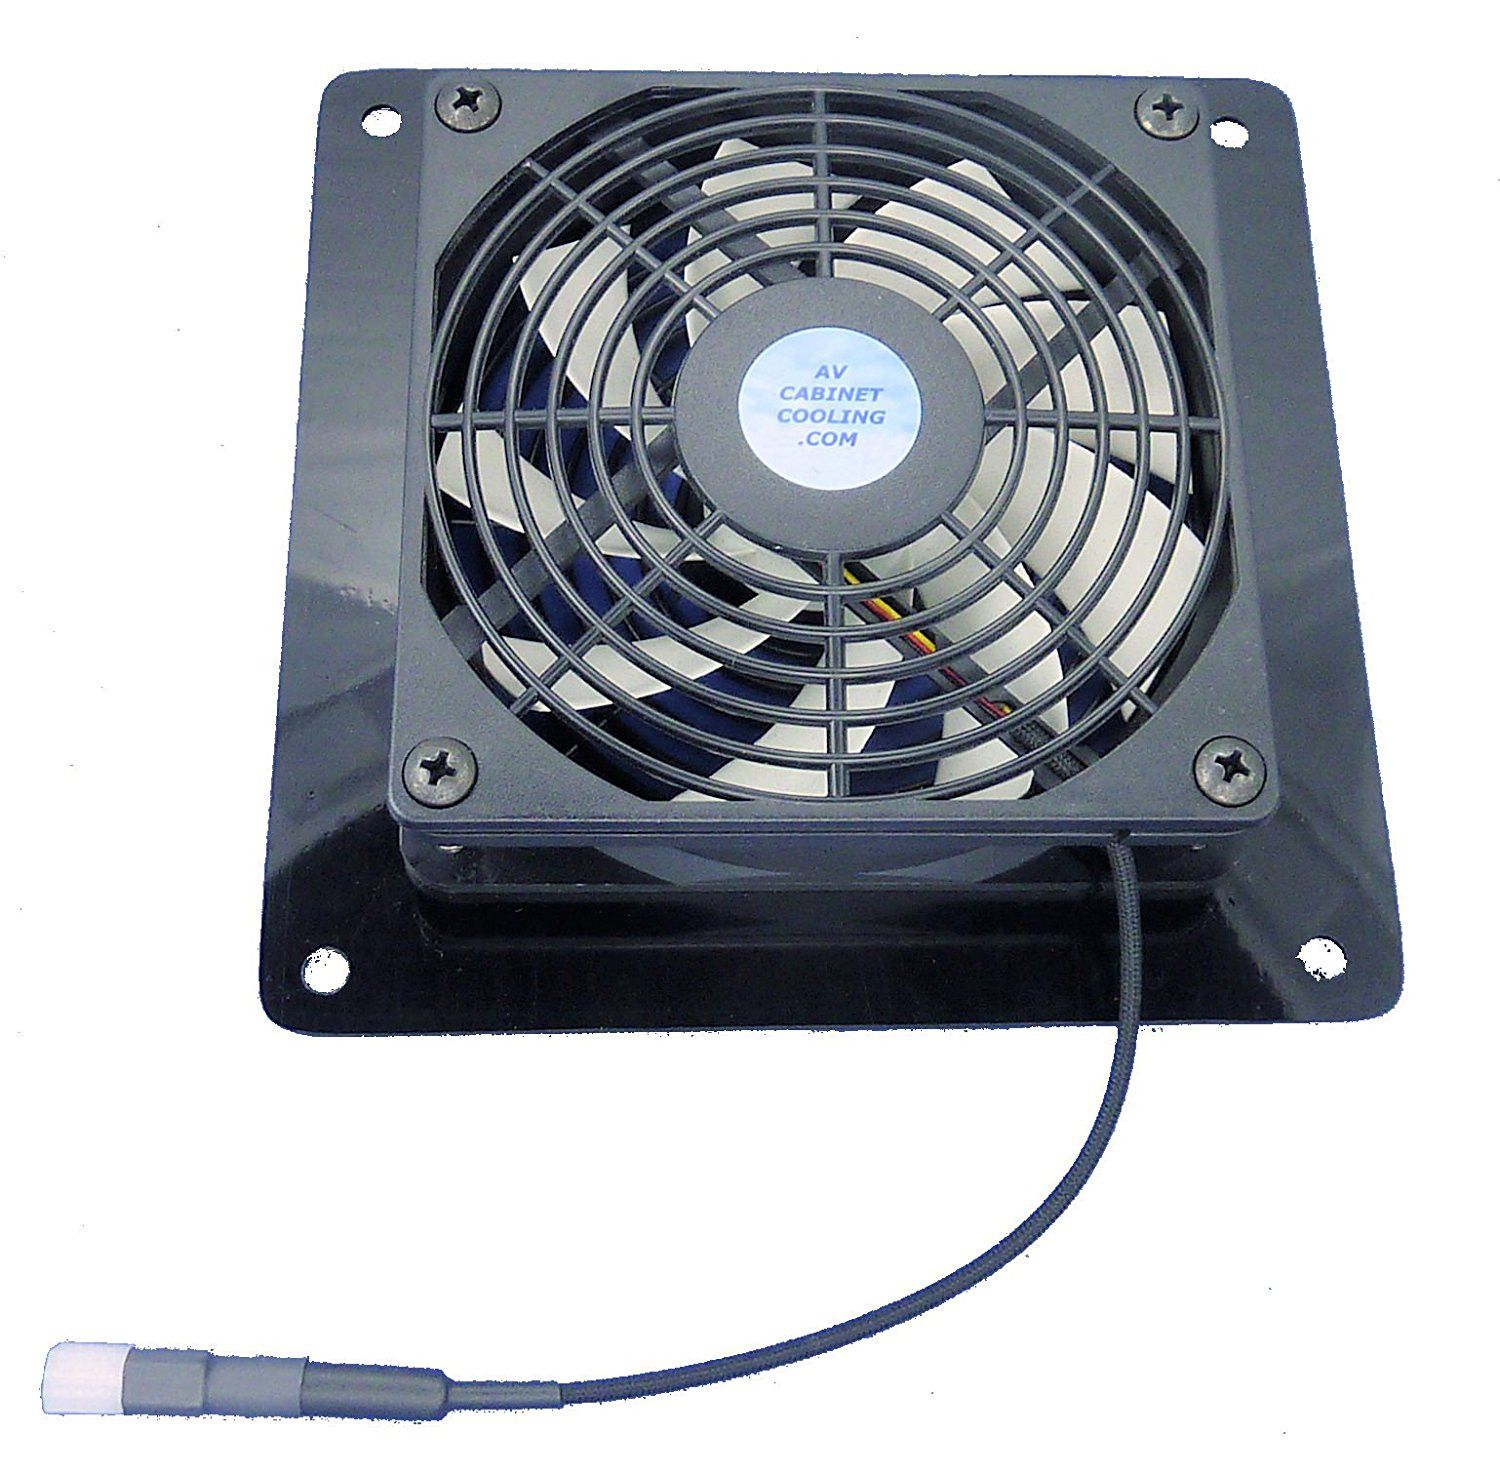 Superieur 70+ Stereo Cabinet Cooling Fan With Thermostat   Kitchen Design And Layout  Ideas Check More